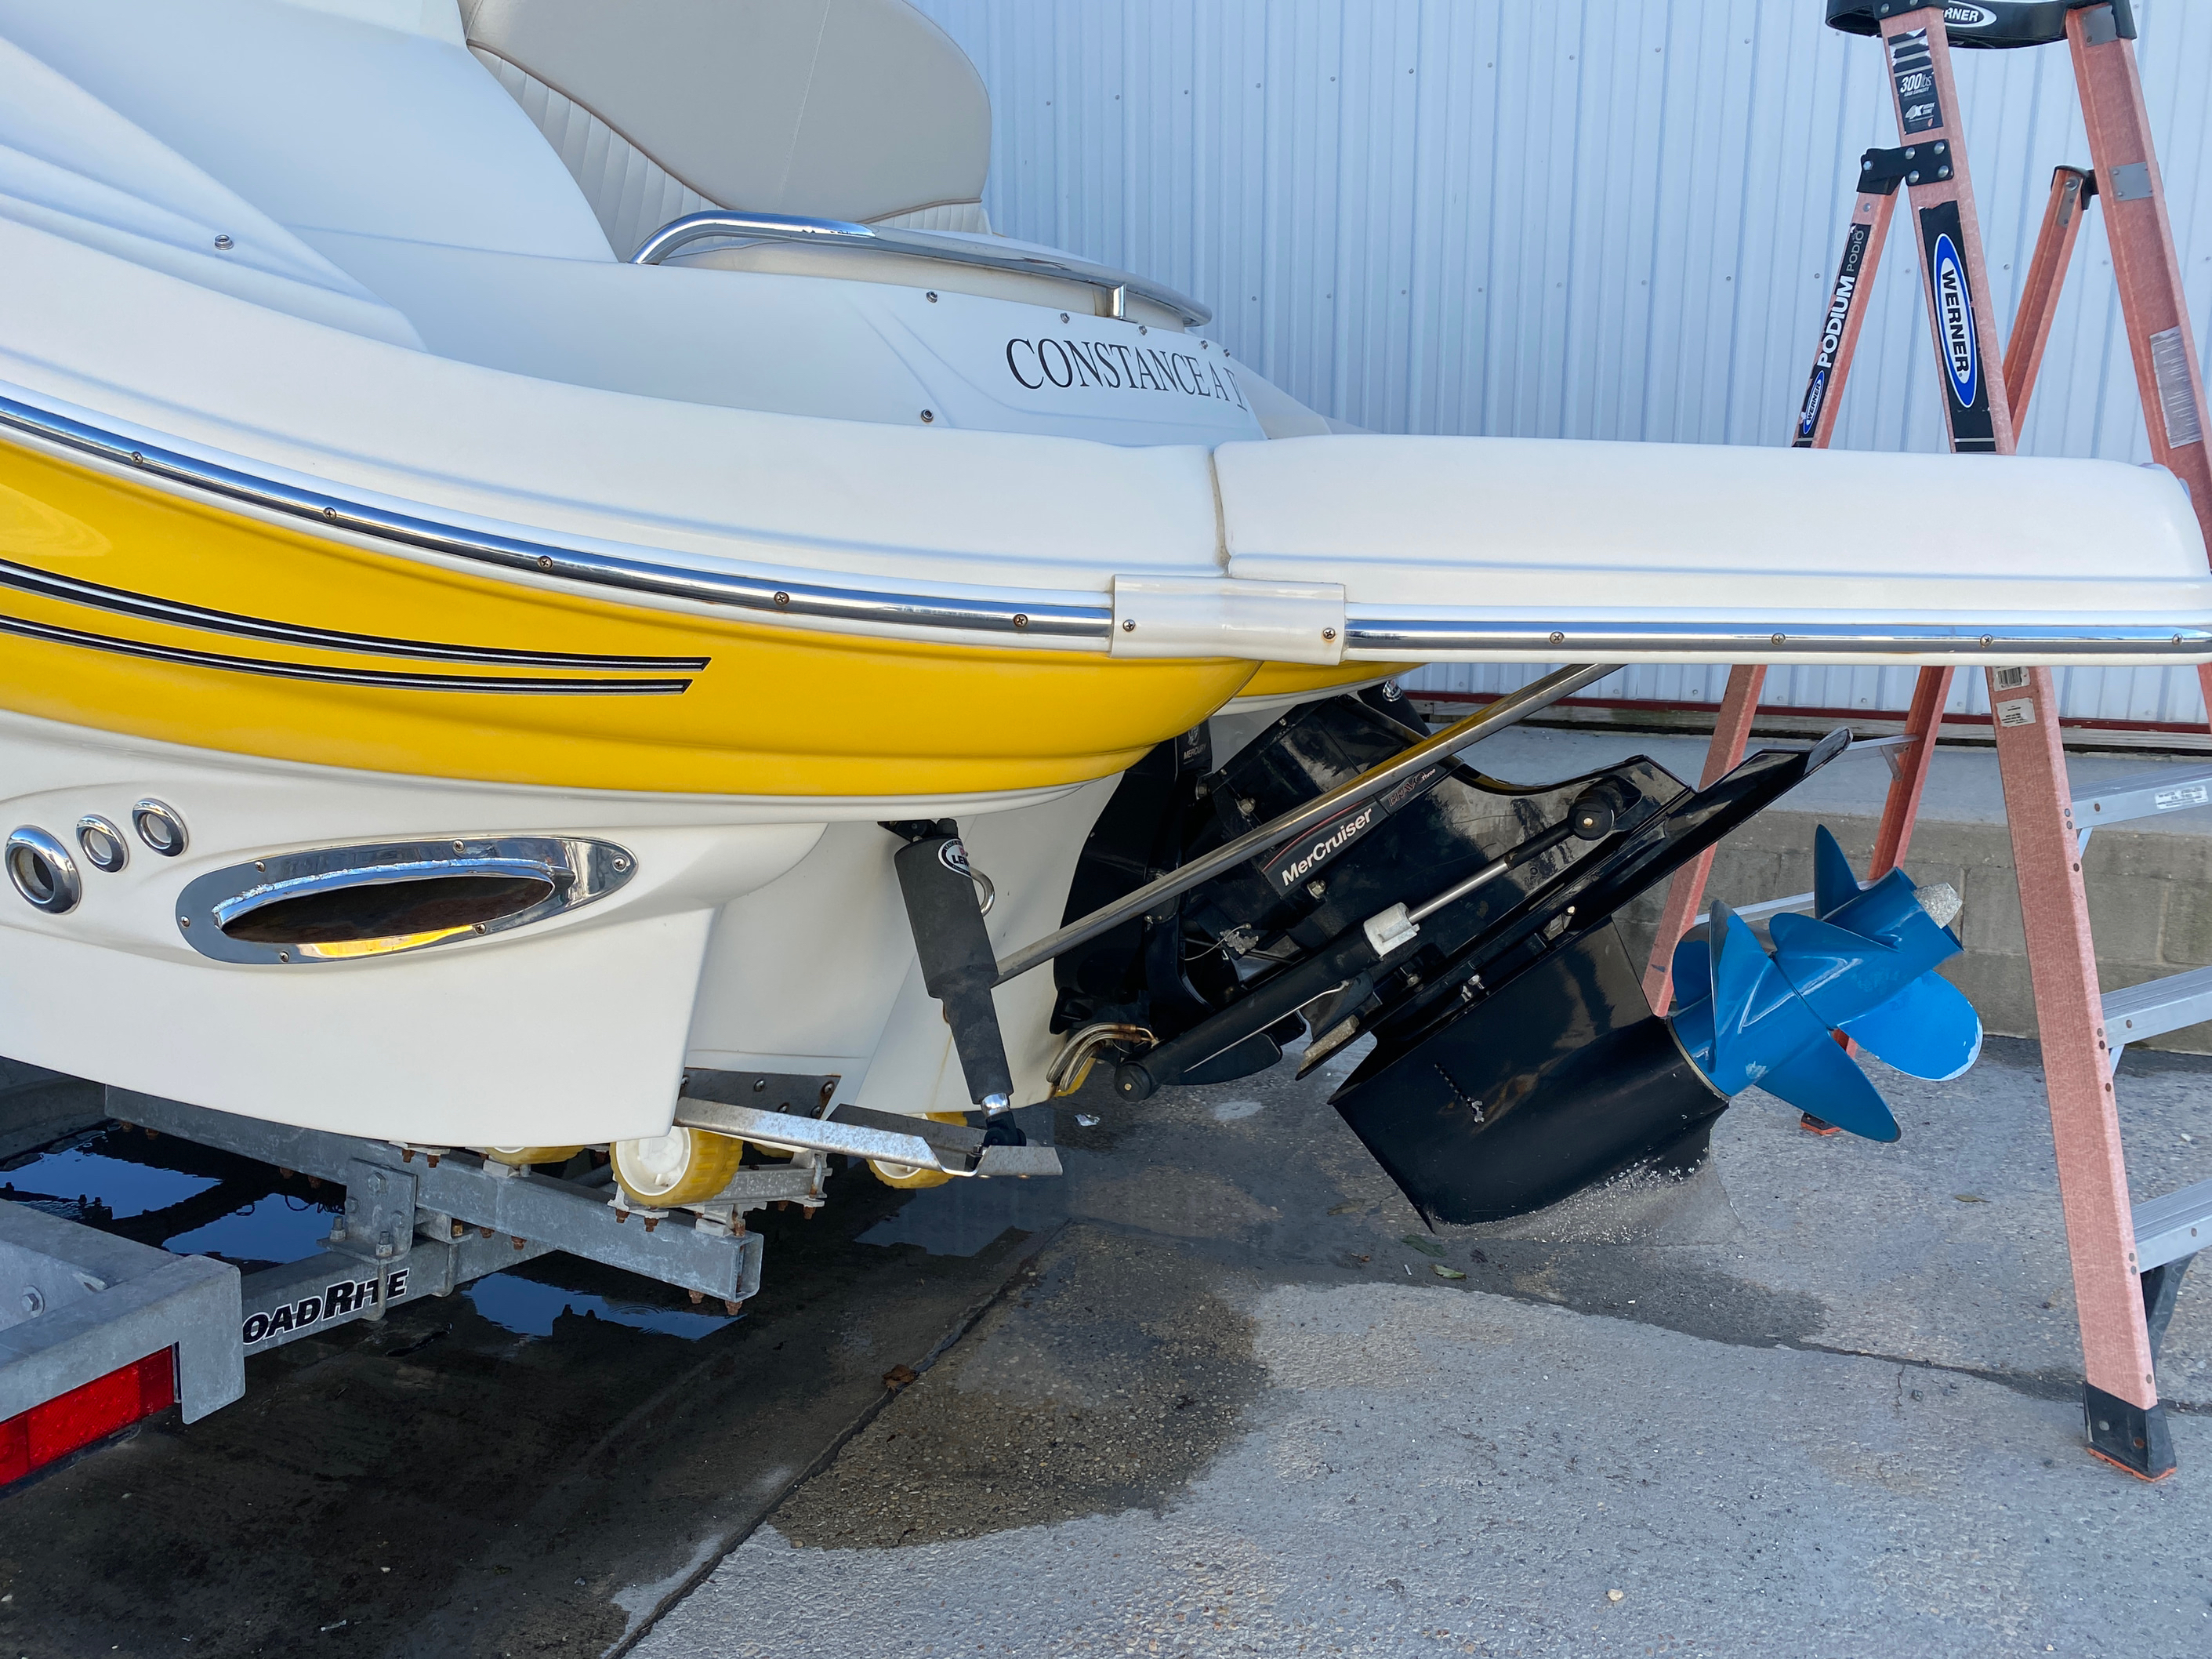 2008 Azure boat for sale, model of the boat is AZ 240 & Image # 14 of 18